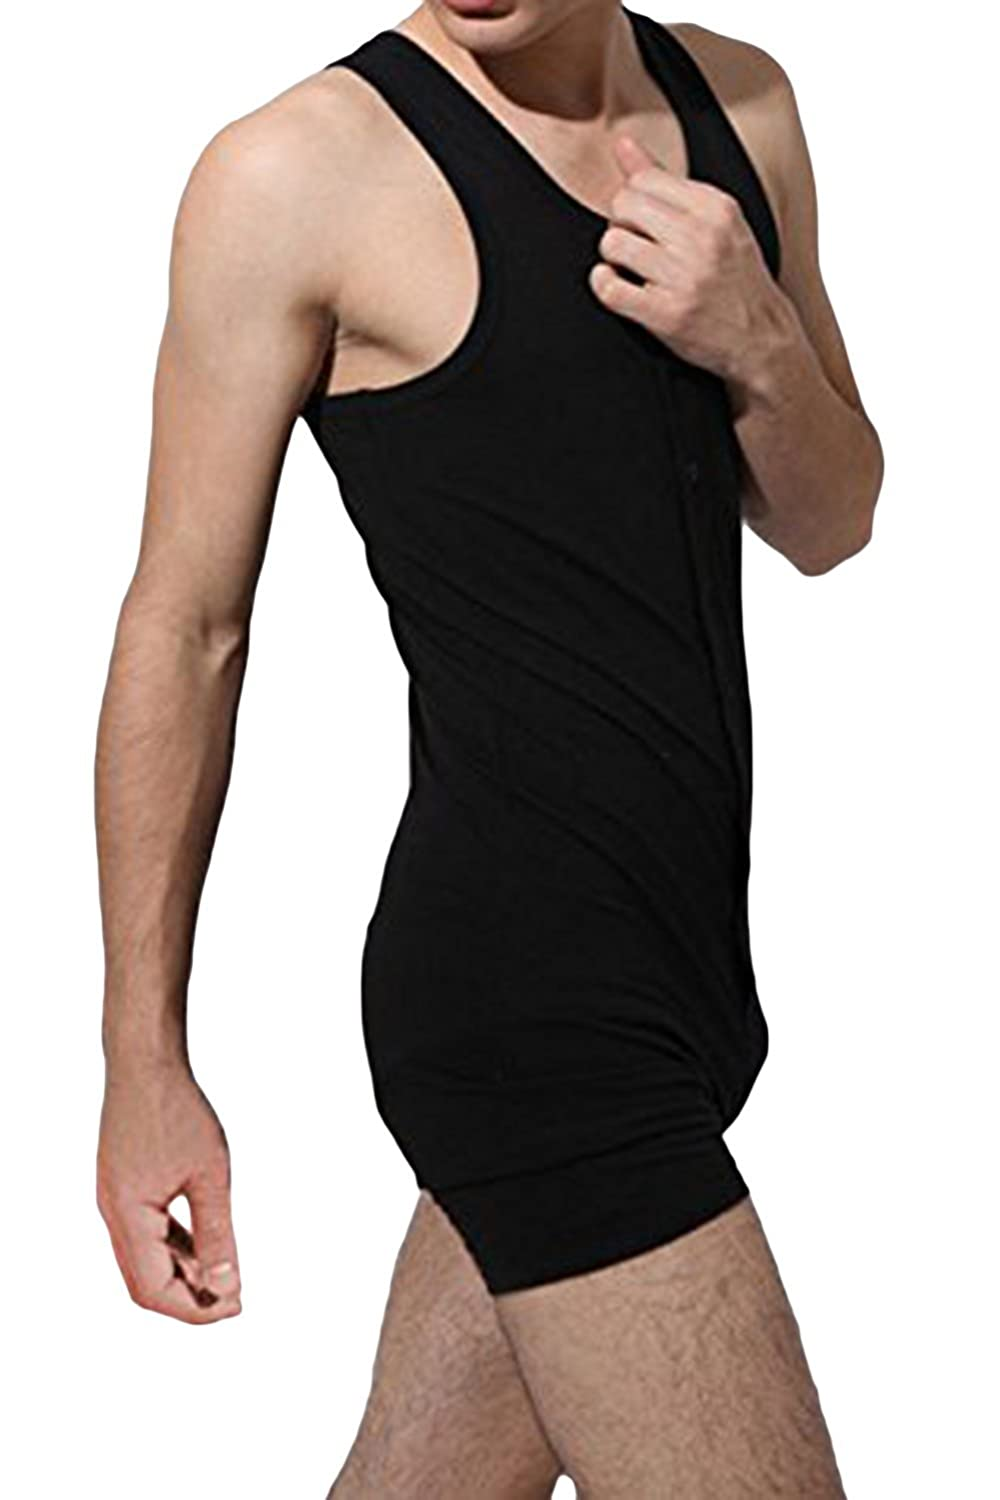 Edwardian Men's Fashion & Clothing One Piece Button Bodywear Body Suit Underwear Tights Leotard $17.91 AT vintagedancer.com